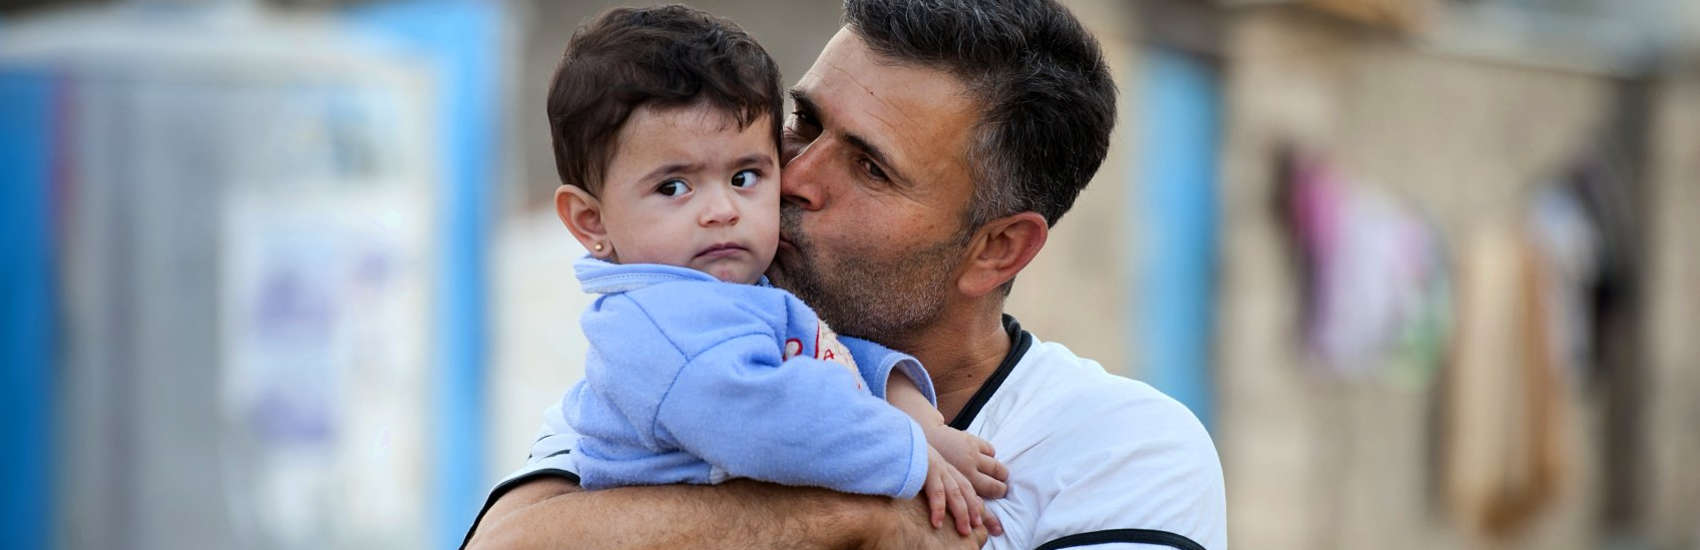 A fourteen month-old boy get a kiss from his father at a refugee camp. Hundreds of thousands of refugees and internally displaced families have fled the violence across Iraq and Syria. Children in Iraq have often witnessed or experienced violence, and left their homes in terrifying circumstances. Many now face hot summers and freezing winters living in tents, half built apartment blocks and public buildings. Save the Children is providing essential goods to families, such as water and hygiene kits, as well as building sanitation facilities and running child friendly spaces and education classes. Photo credit: Sebastian Rich/Save the Children, October 2014.